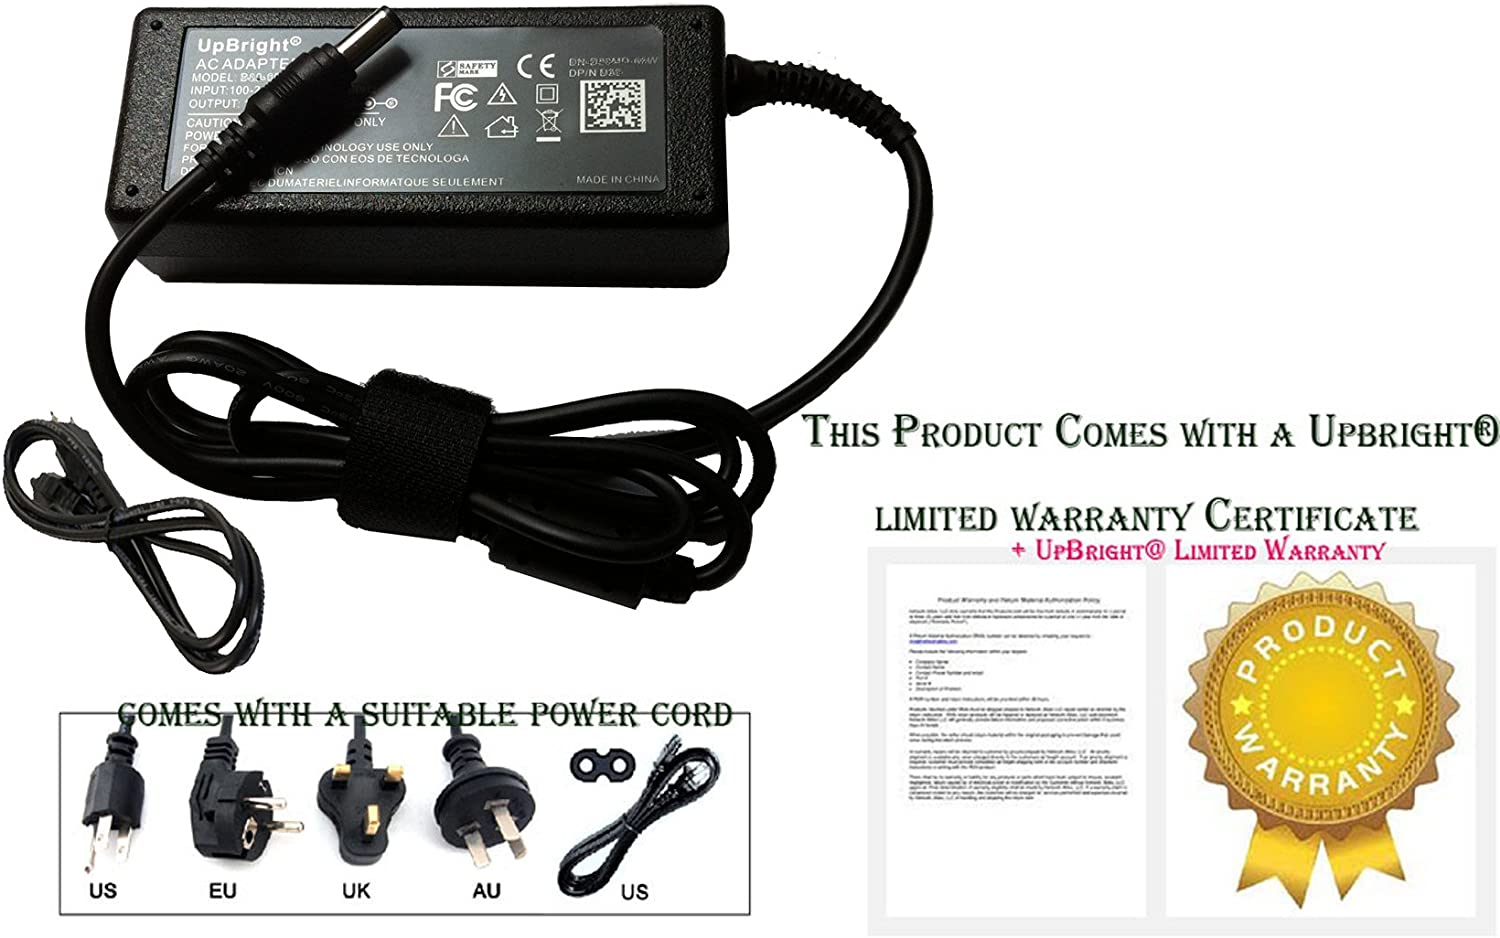 UPBRIGHT New Global AC//DC Adapter for Samsung T23A750 T23A950 3D LED LCD HD TV HDTV Monitor I.T.E Power Supply Cord Cable Charger Mains PSU